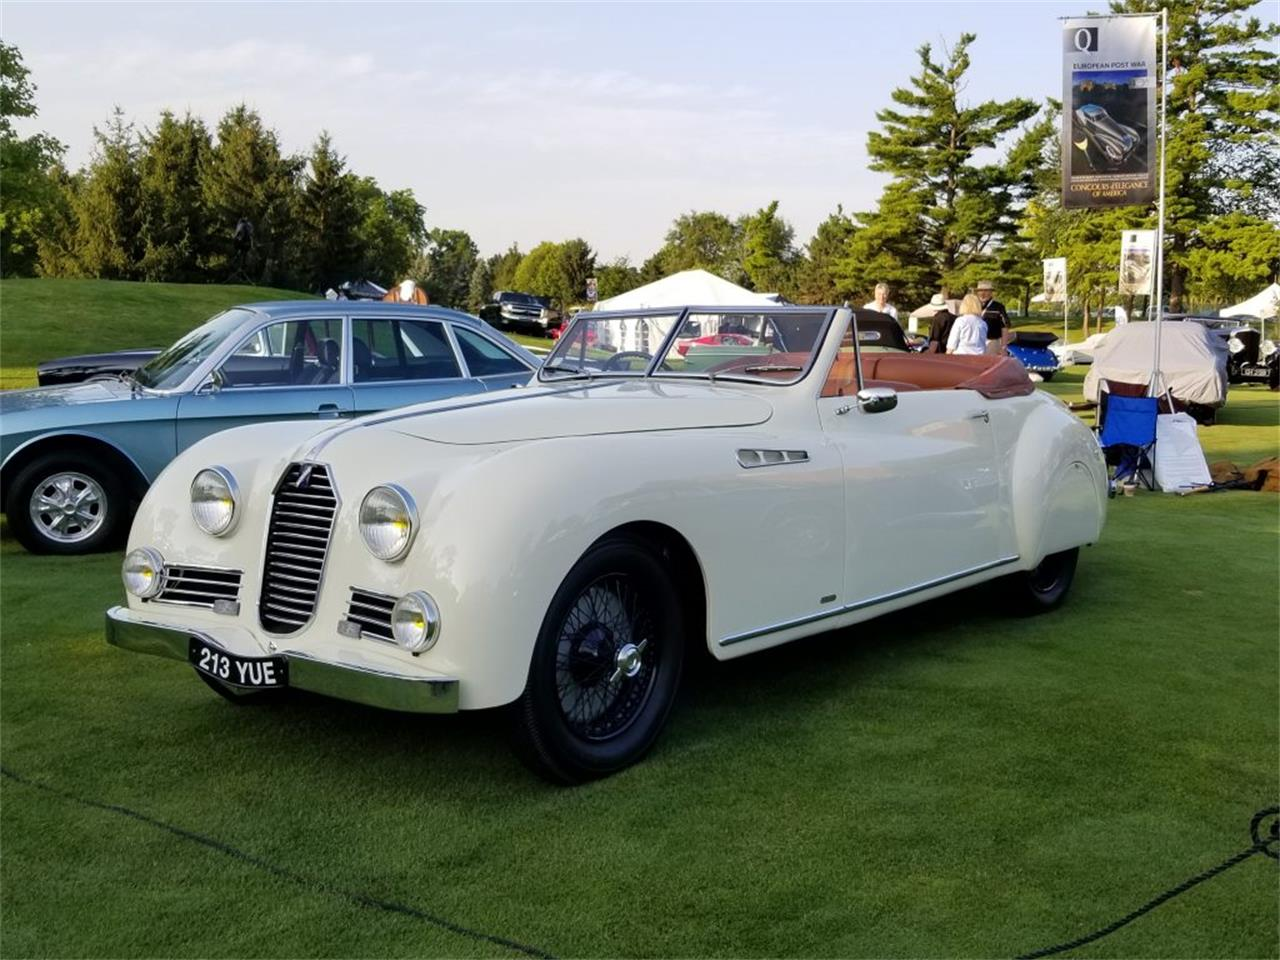 Large Picture of Classic '50 Talbot-Lago Roadster located in Michigan Offered by Nostalgic Motoring Ltd. - OCHL